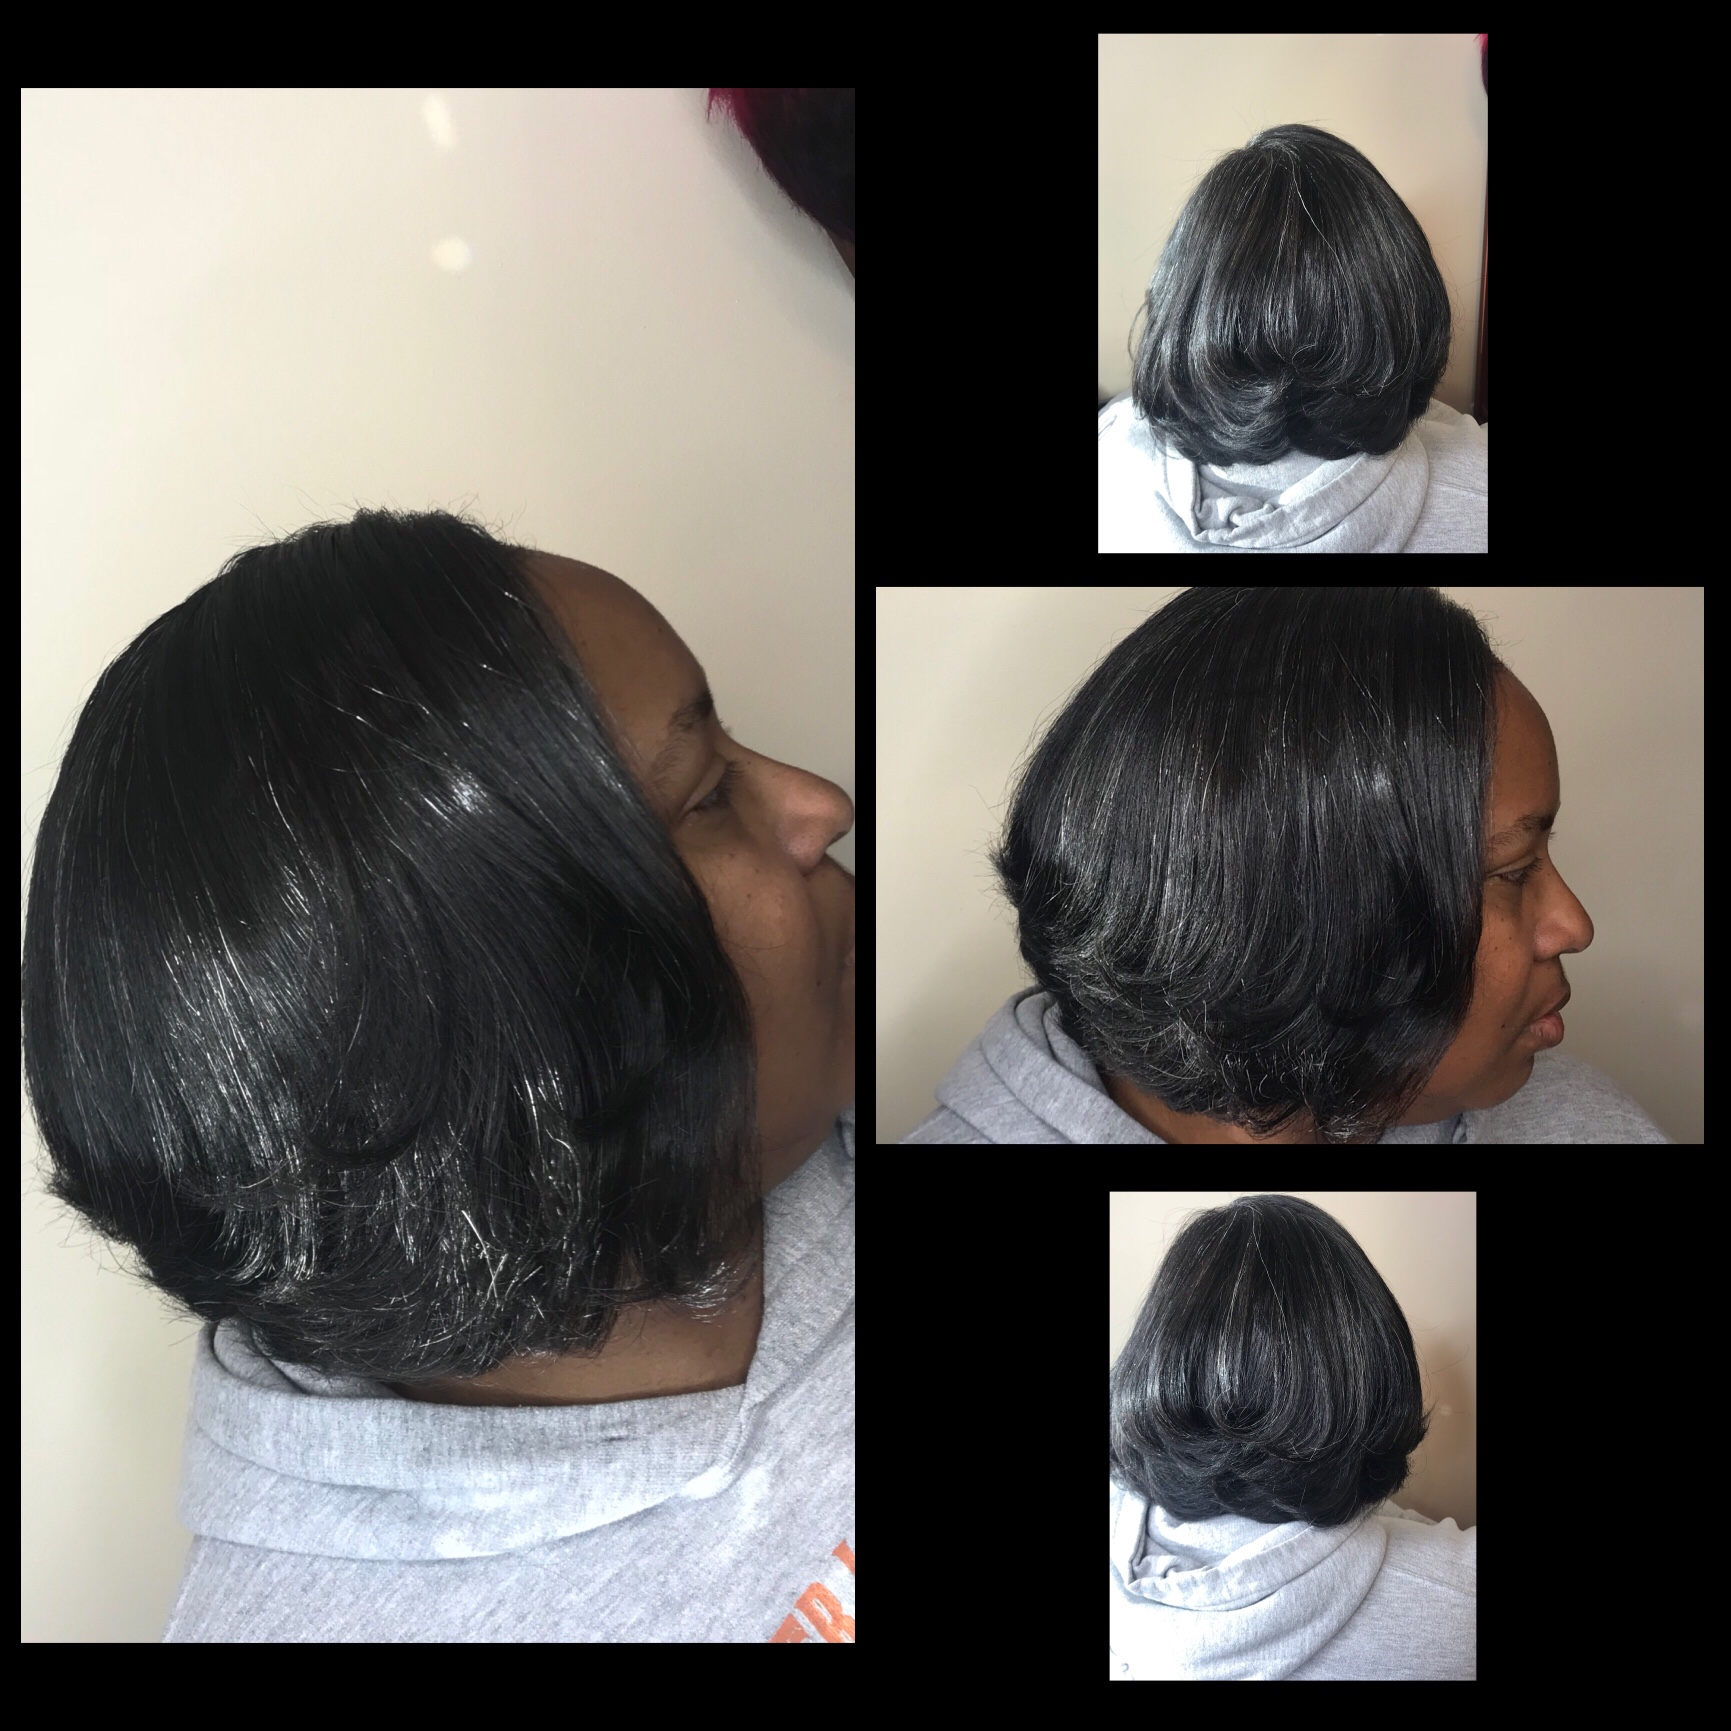 prices for haircuts a touch of jazz salon in buford ga vagaro 4968 | 28793906 80968$2017 12 23 06 49 14 4968